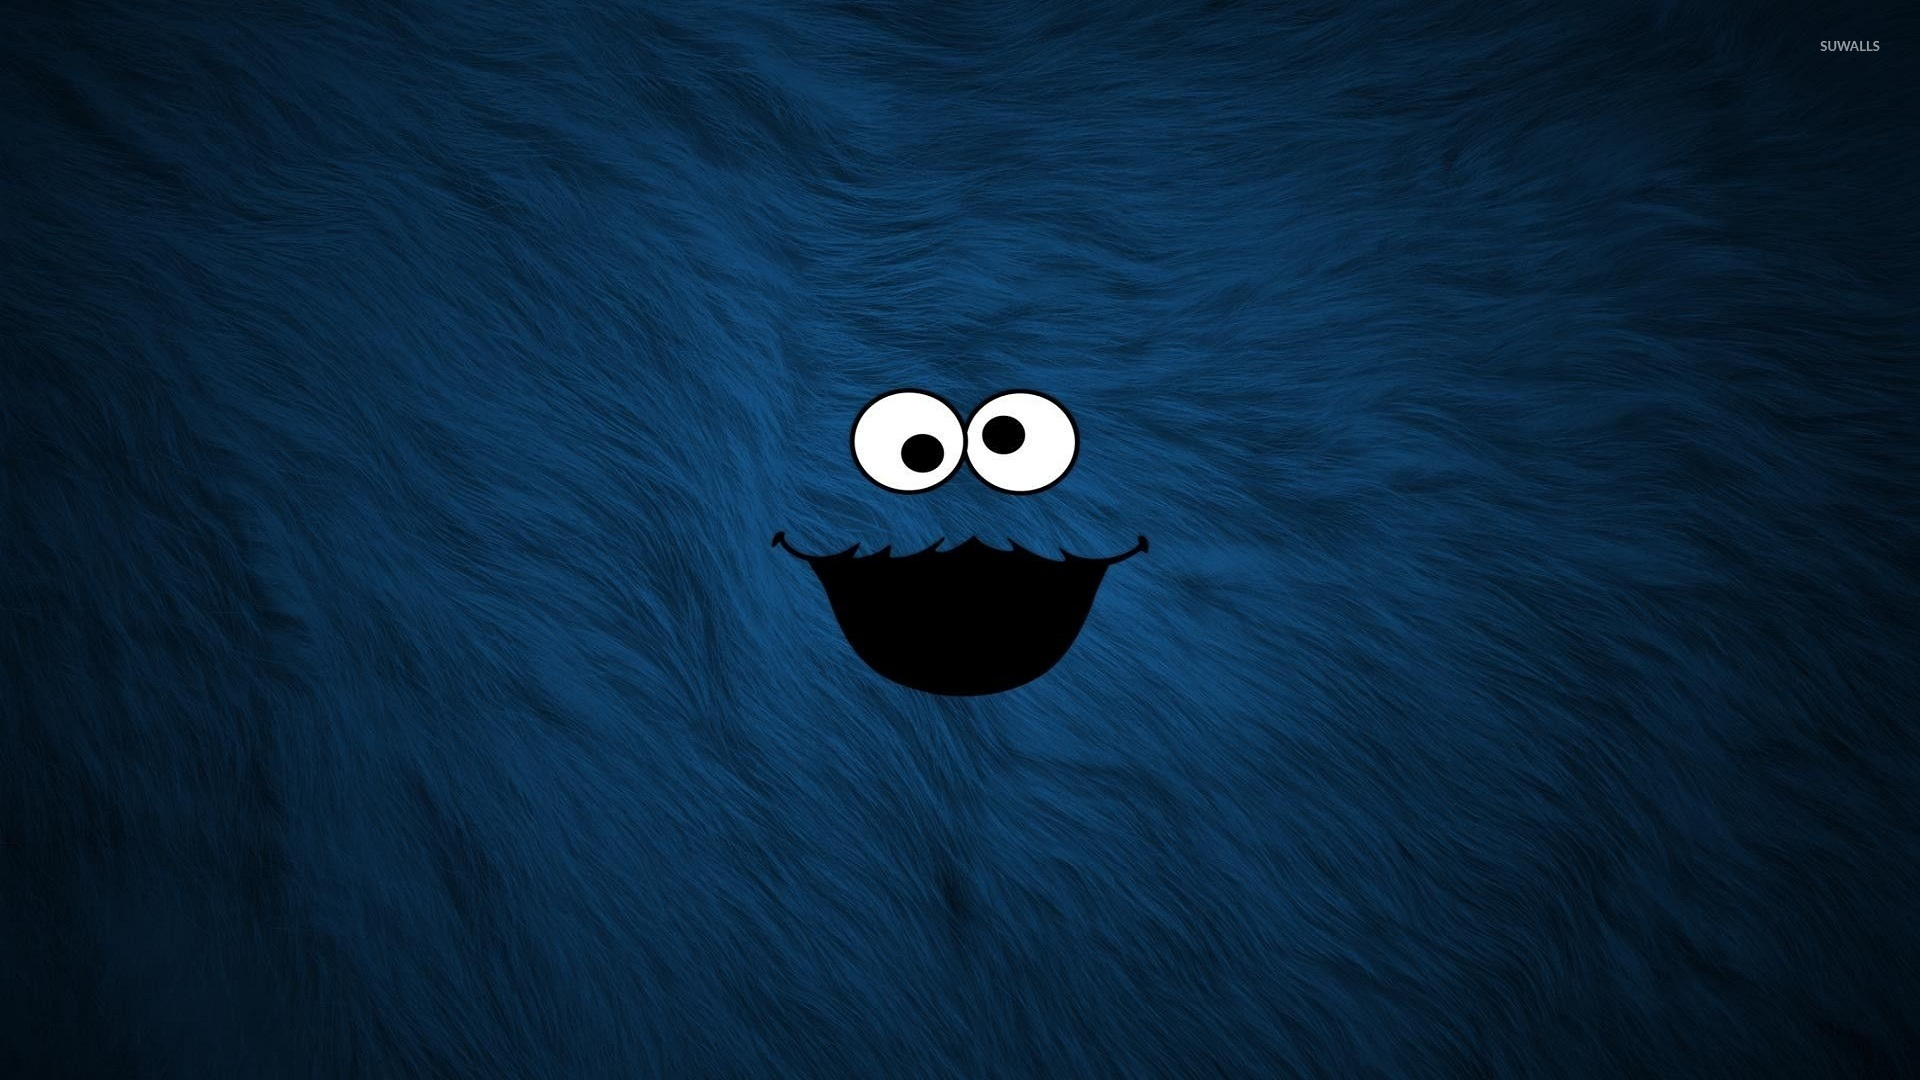 Game Of Thrones Quotes Wallpaper 1920x1080 Cookie Monster From Sesame Street Wallpaper Tv Show